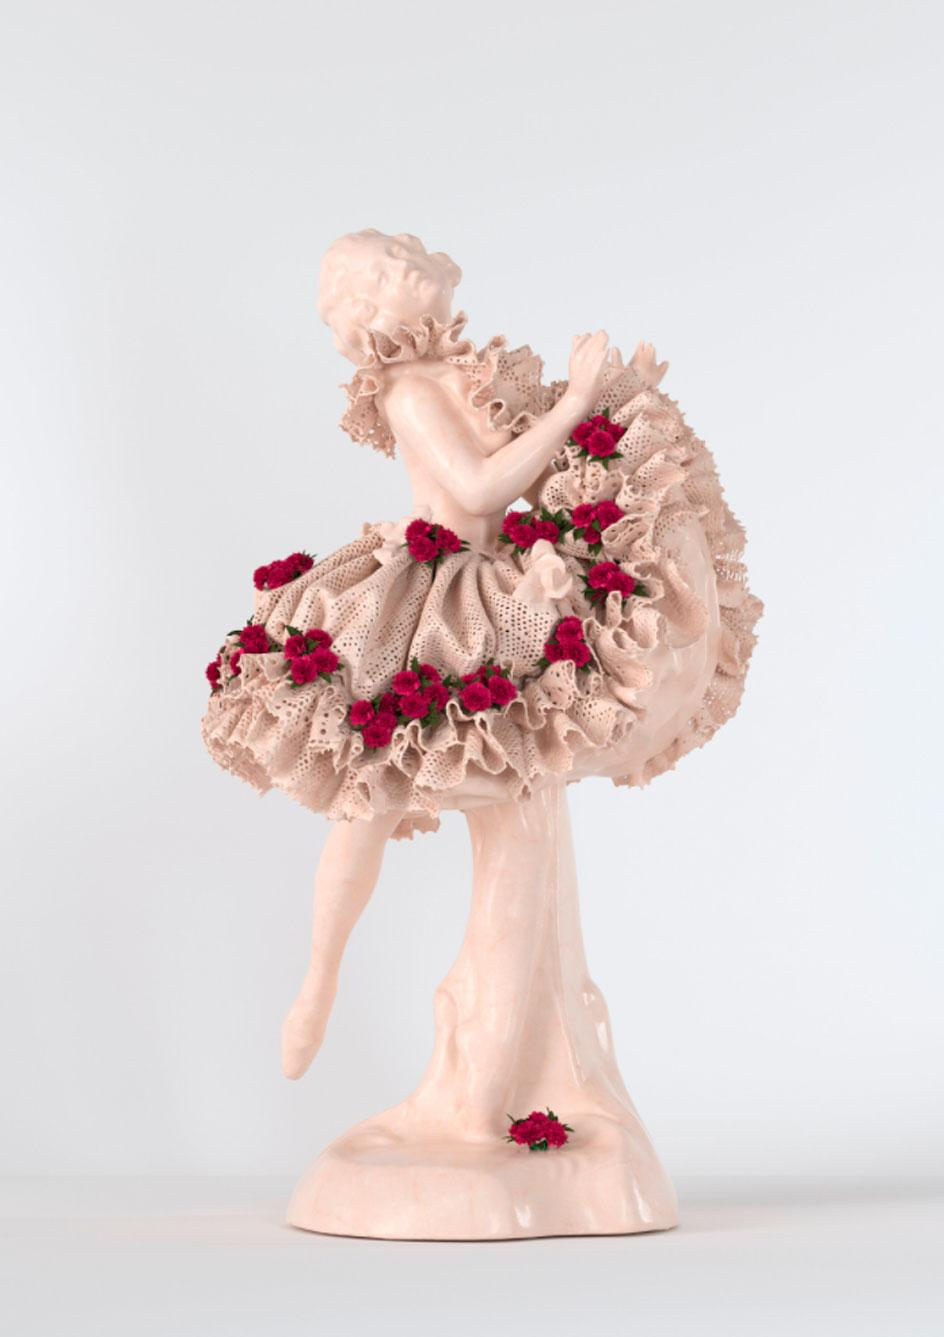 New work Pink Ballerina by Jeff Koons, as seen in his MasterClass lesson